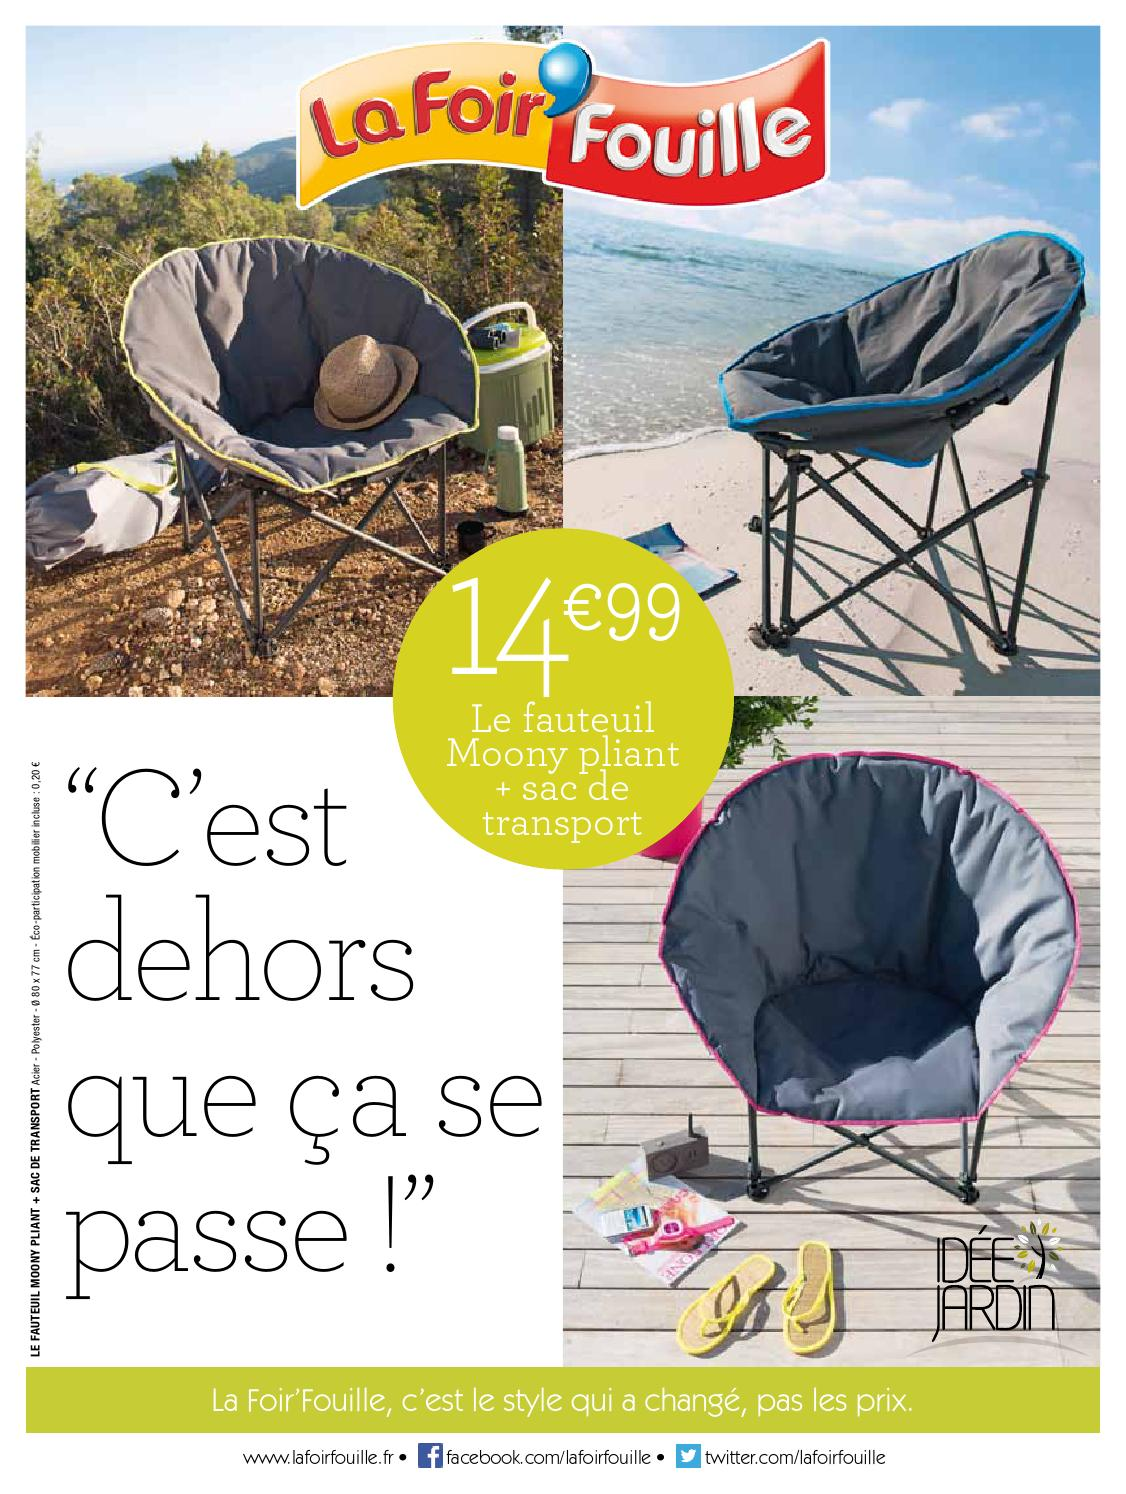 catalogue la foir fouille c 39 est dehors que a se passe by joe monroe issuu. Black Bedroom Furniture Sets. Home Design Ideas